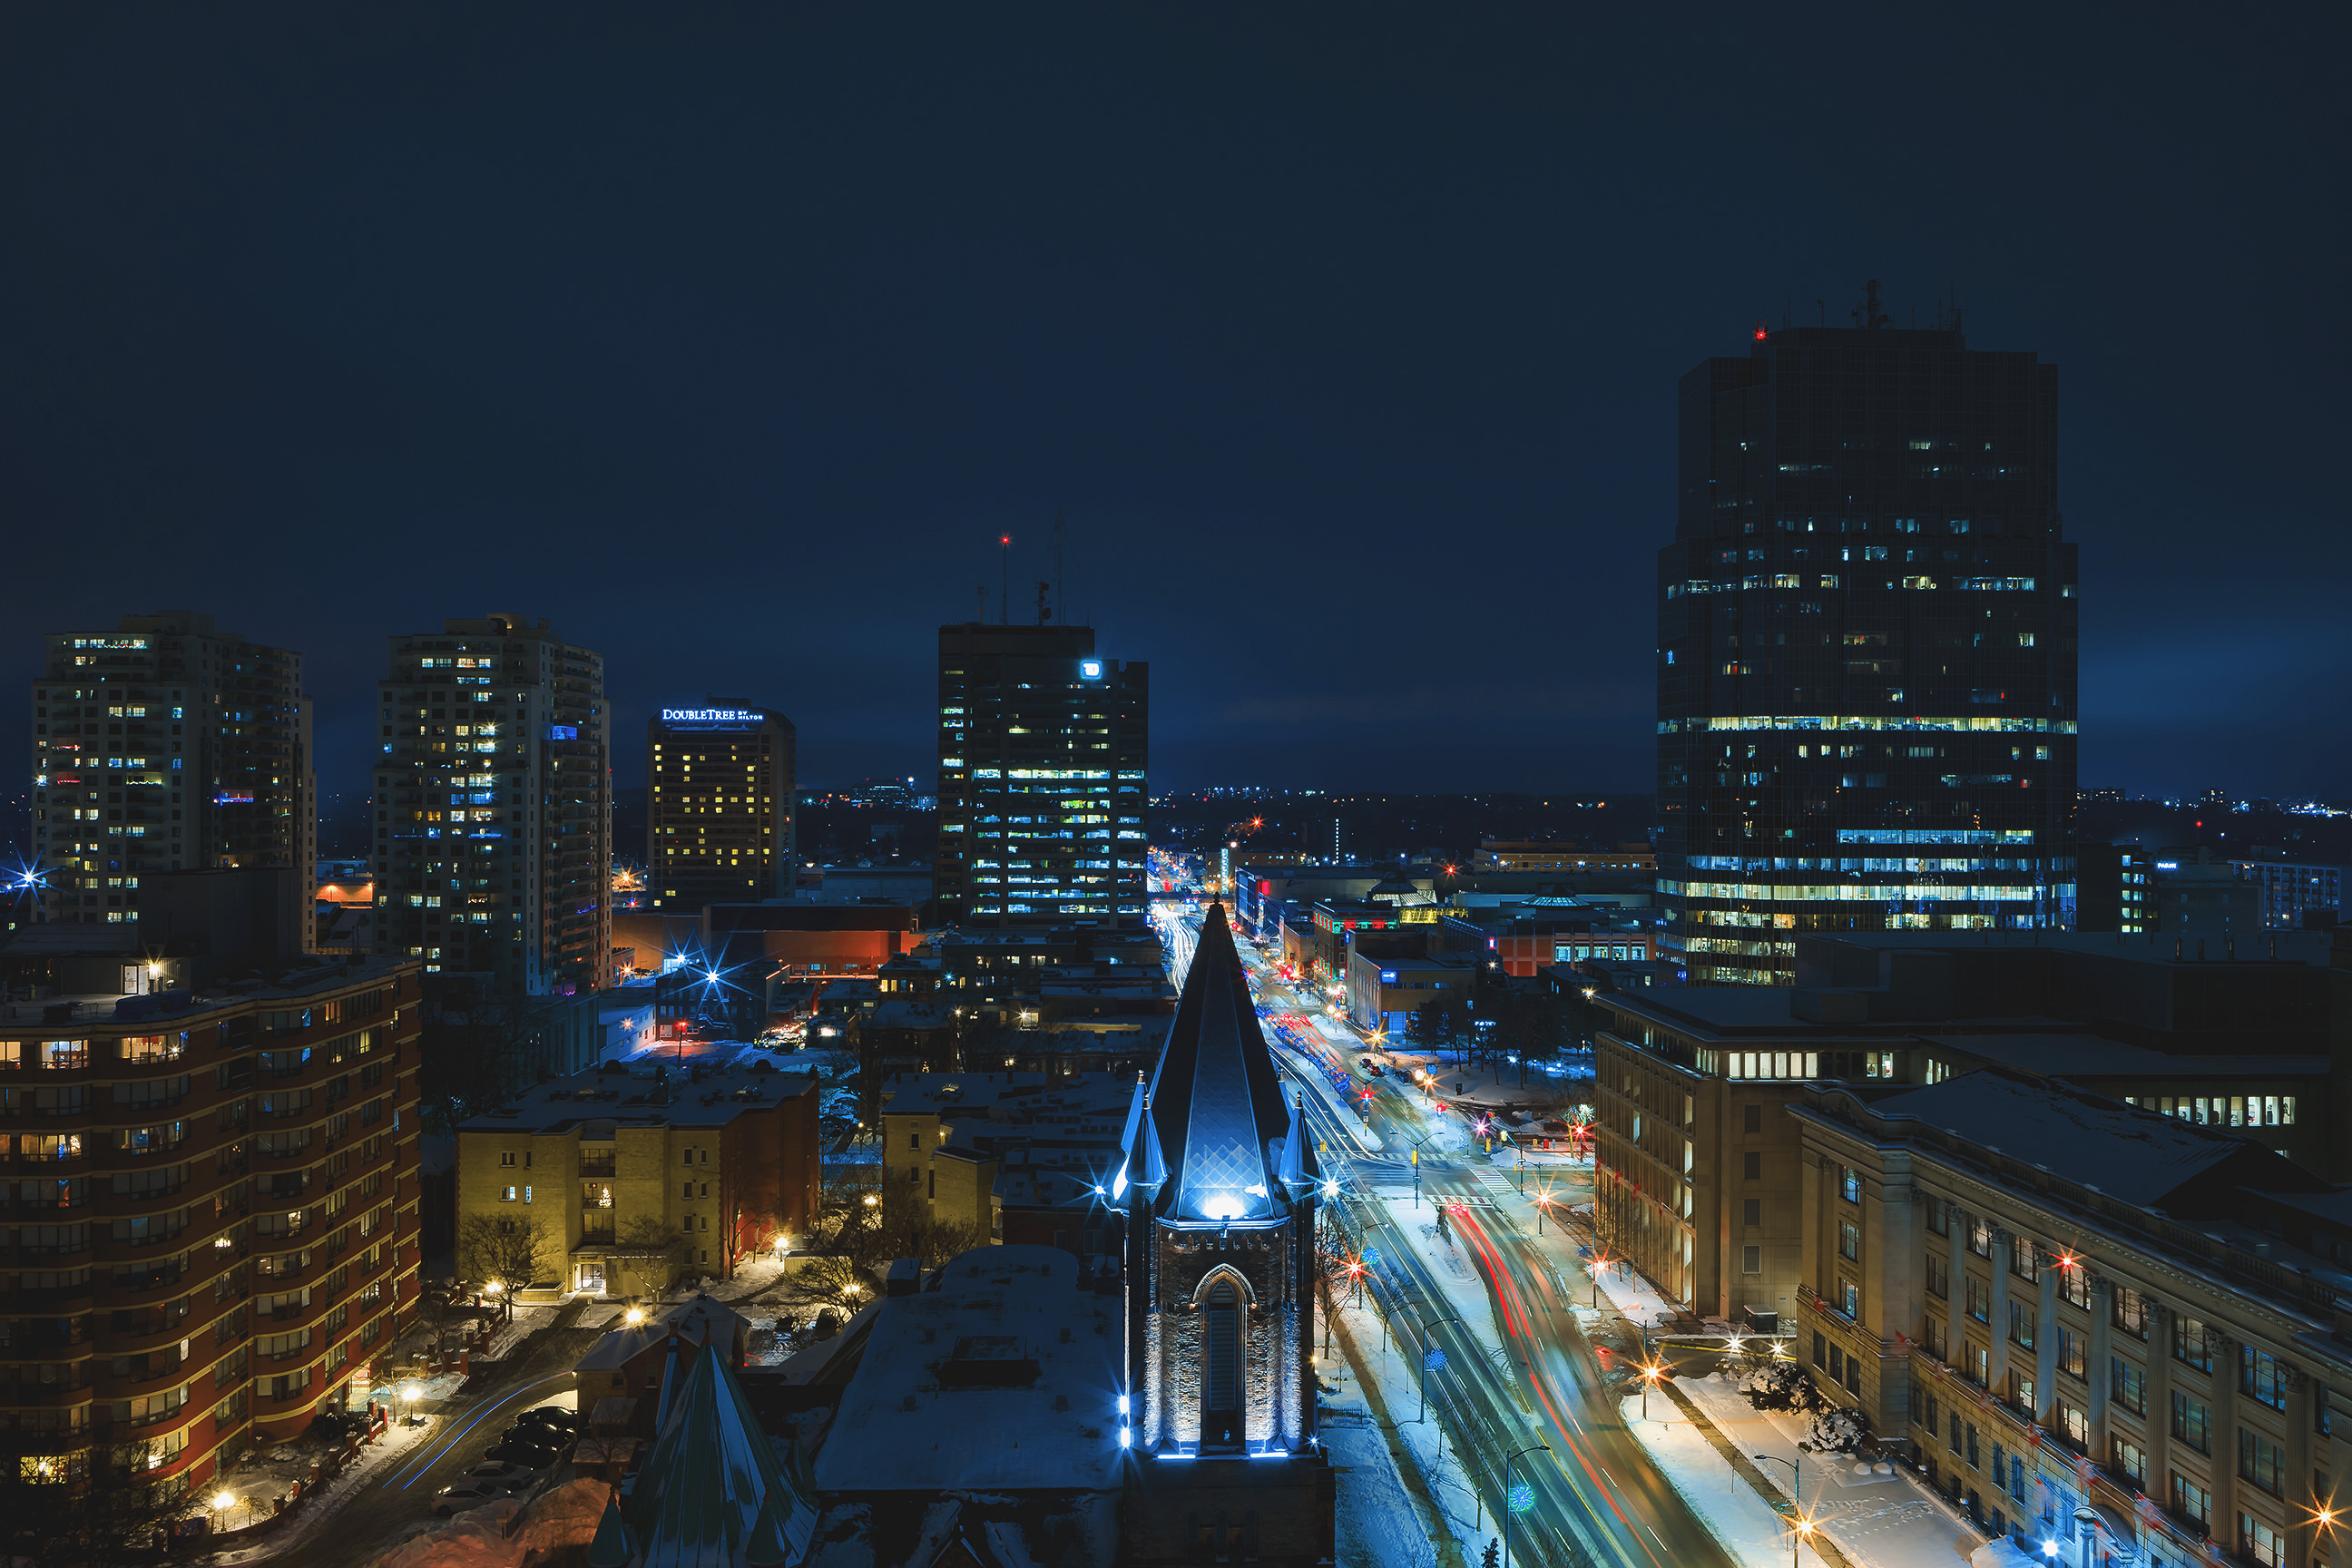 Edited version of photo from city hall overlooking downtown london at night